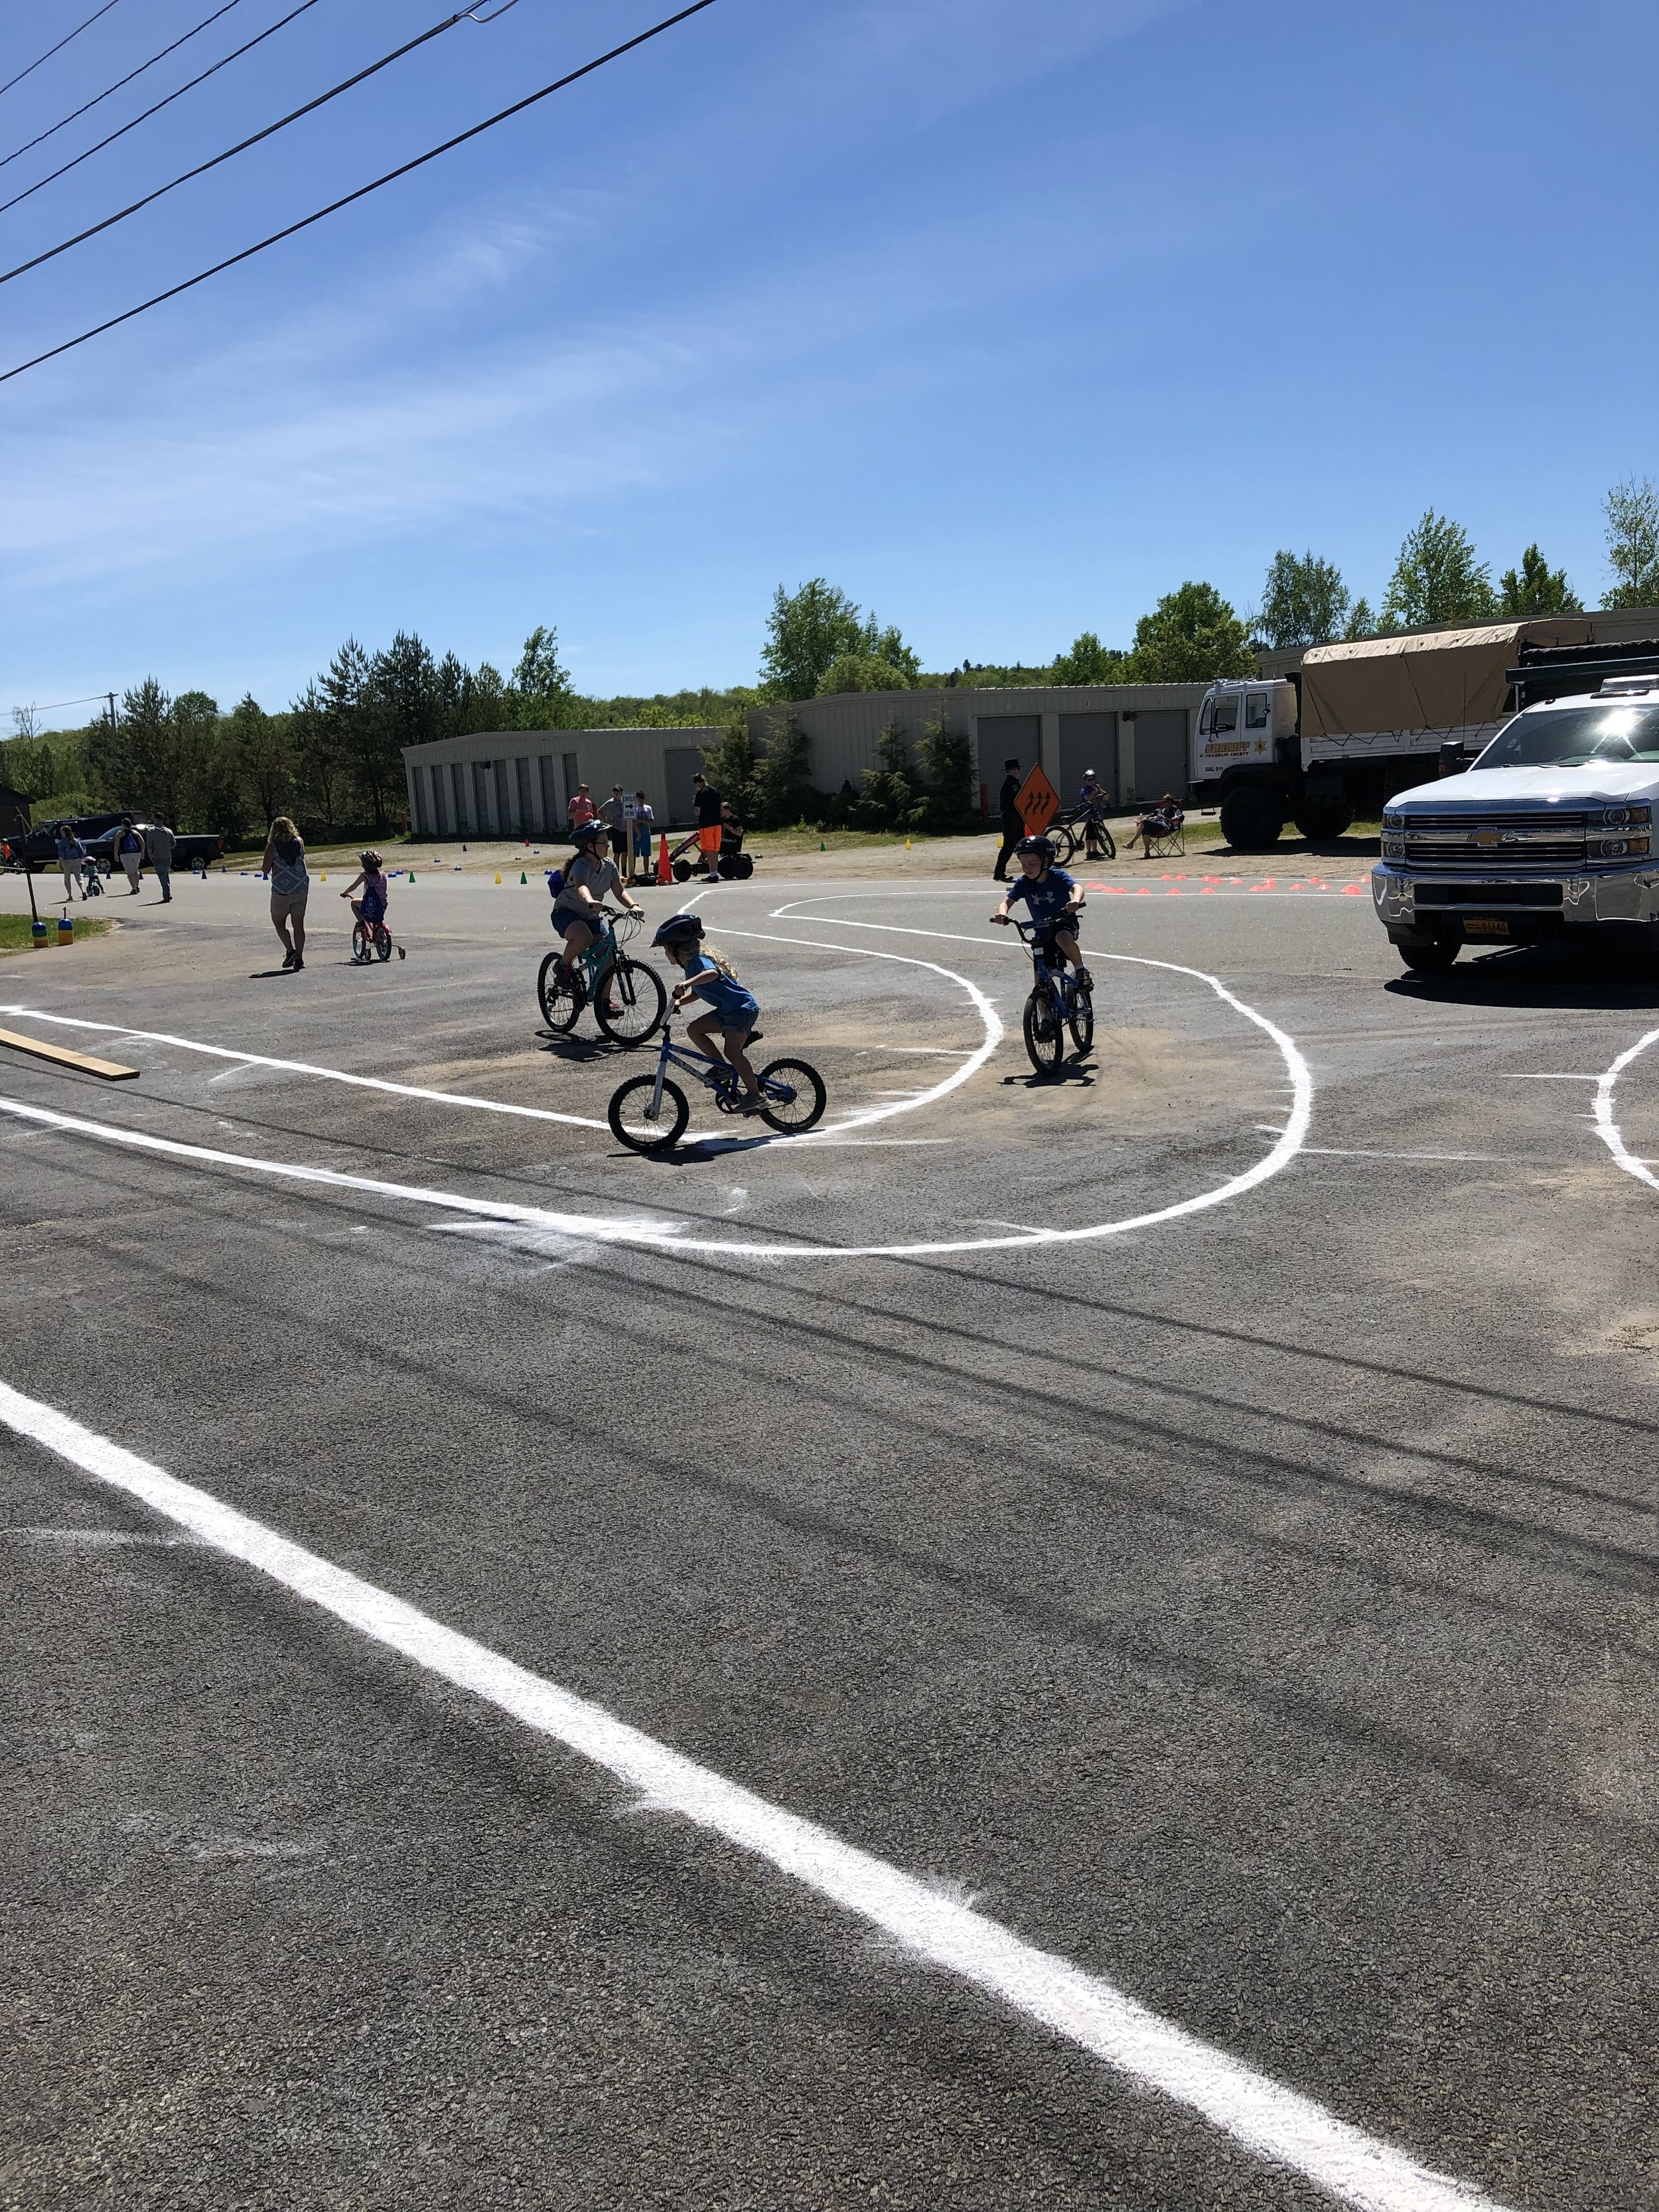 These were some of the more than 400 youngsters who brought their bikes to the police department's Bike Rodeo and Celebration of Youth to show off their bike skills in various ways, learn important road skills, win prizes and fill their bellies with all sorts of tasty things provided by the organizing committee and a half dozen or so local businesses.